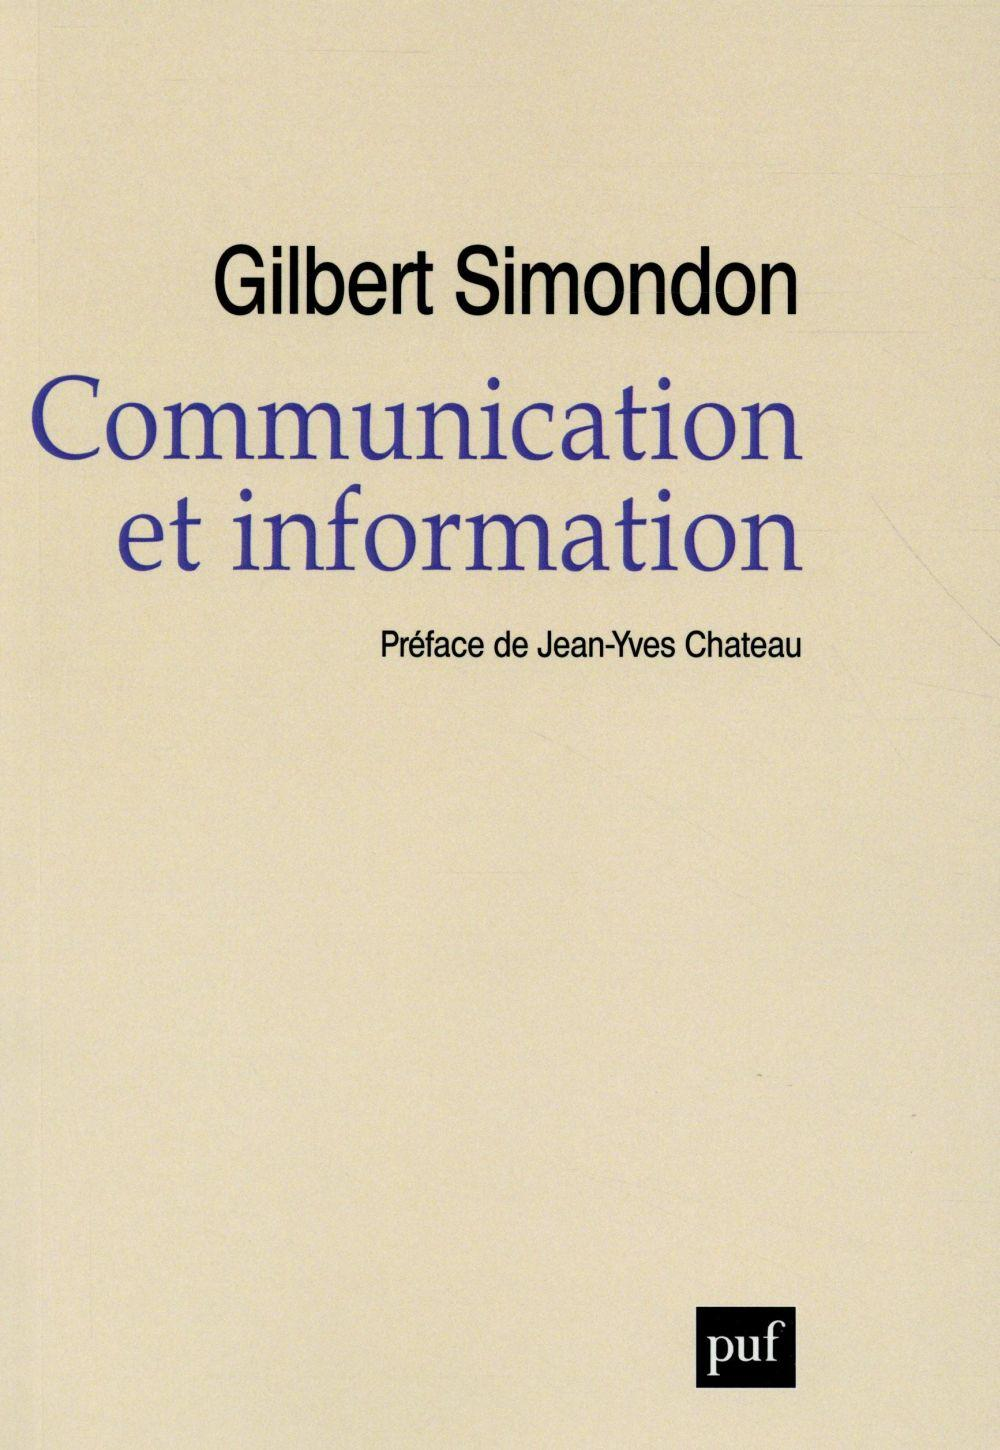 Communication et information  - Gilbert Simondon